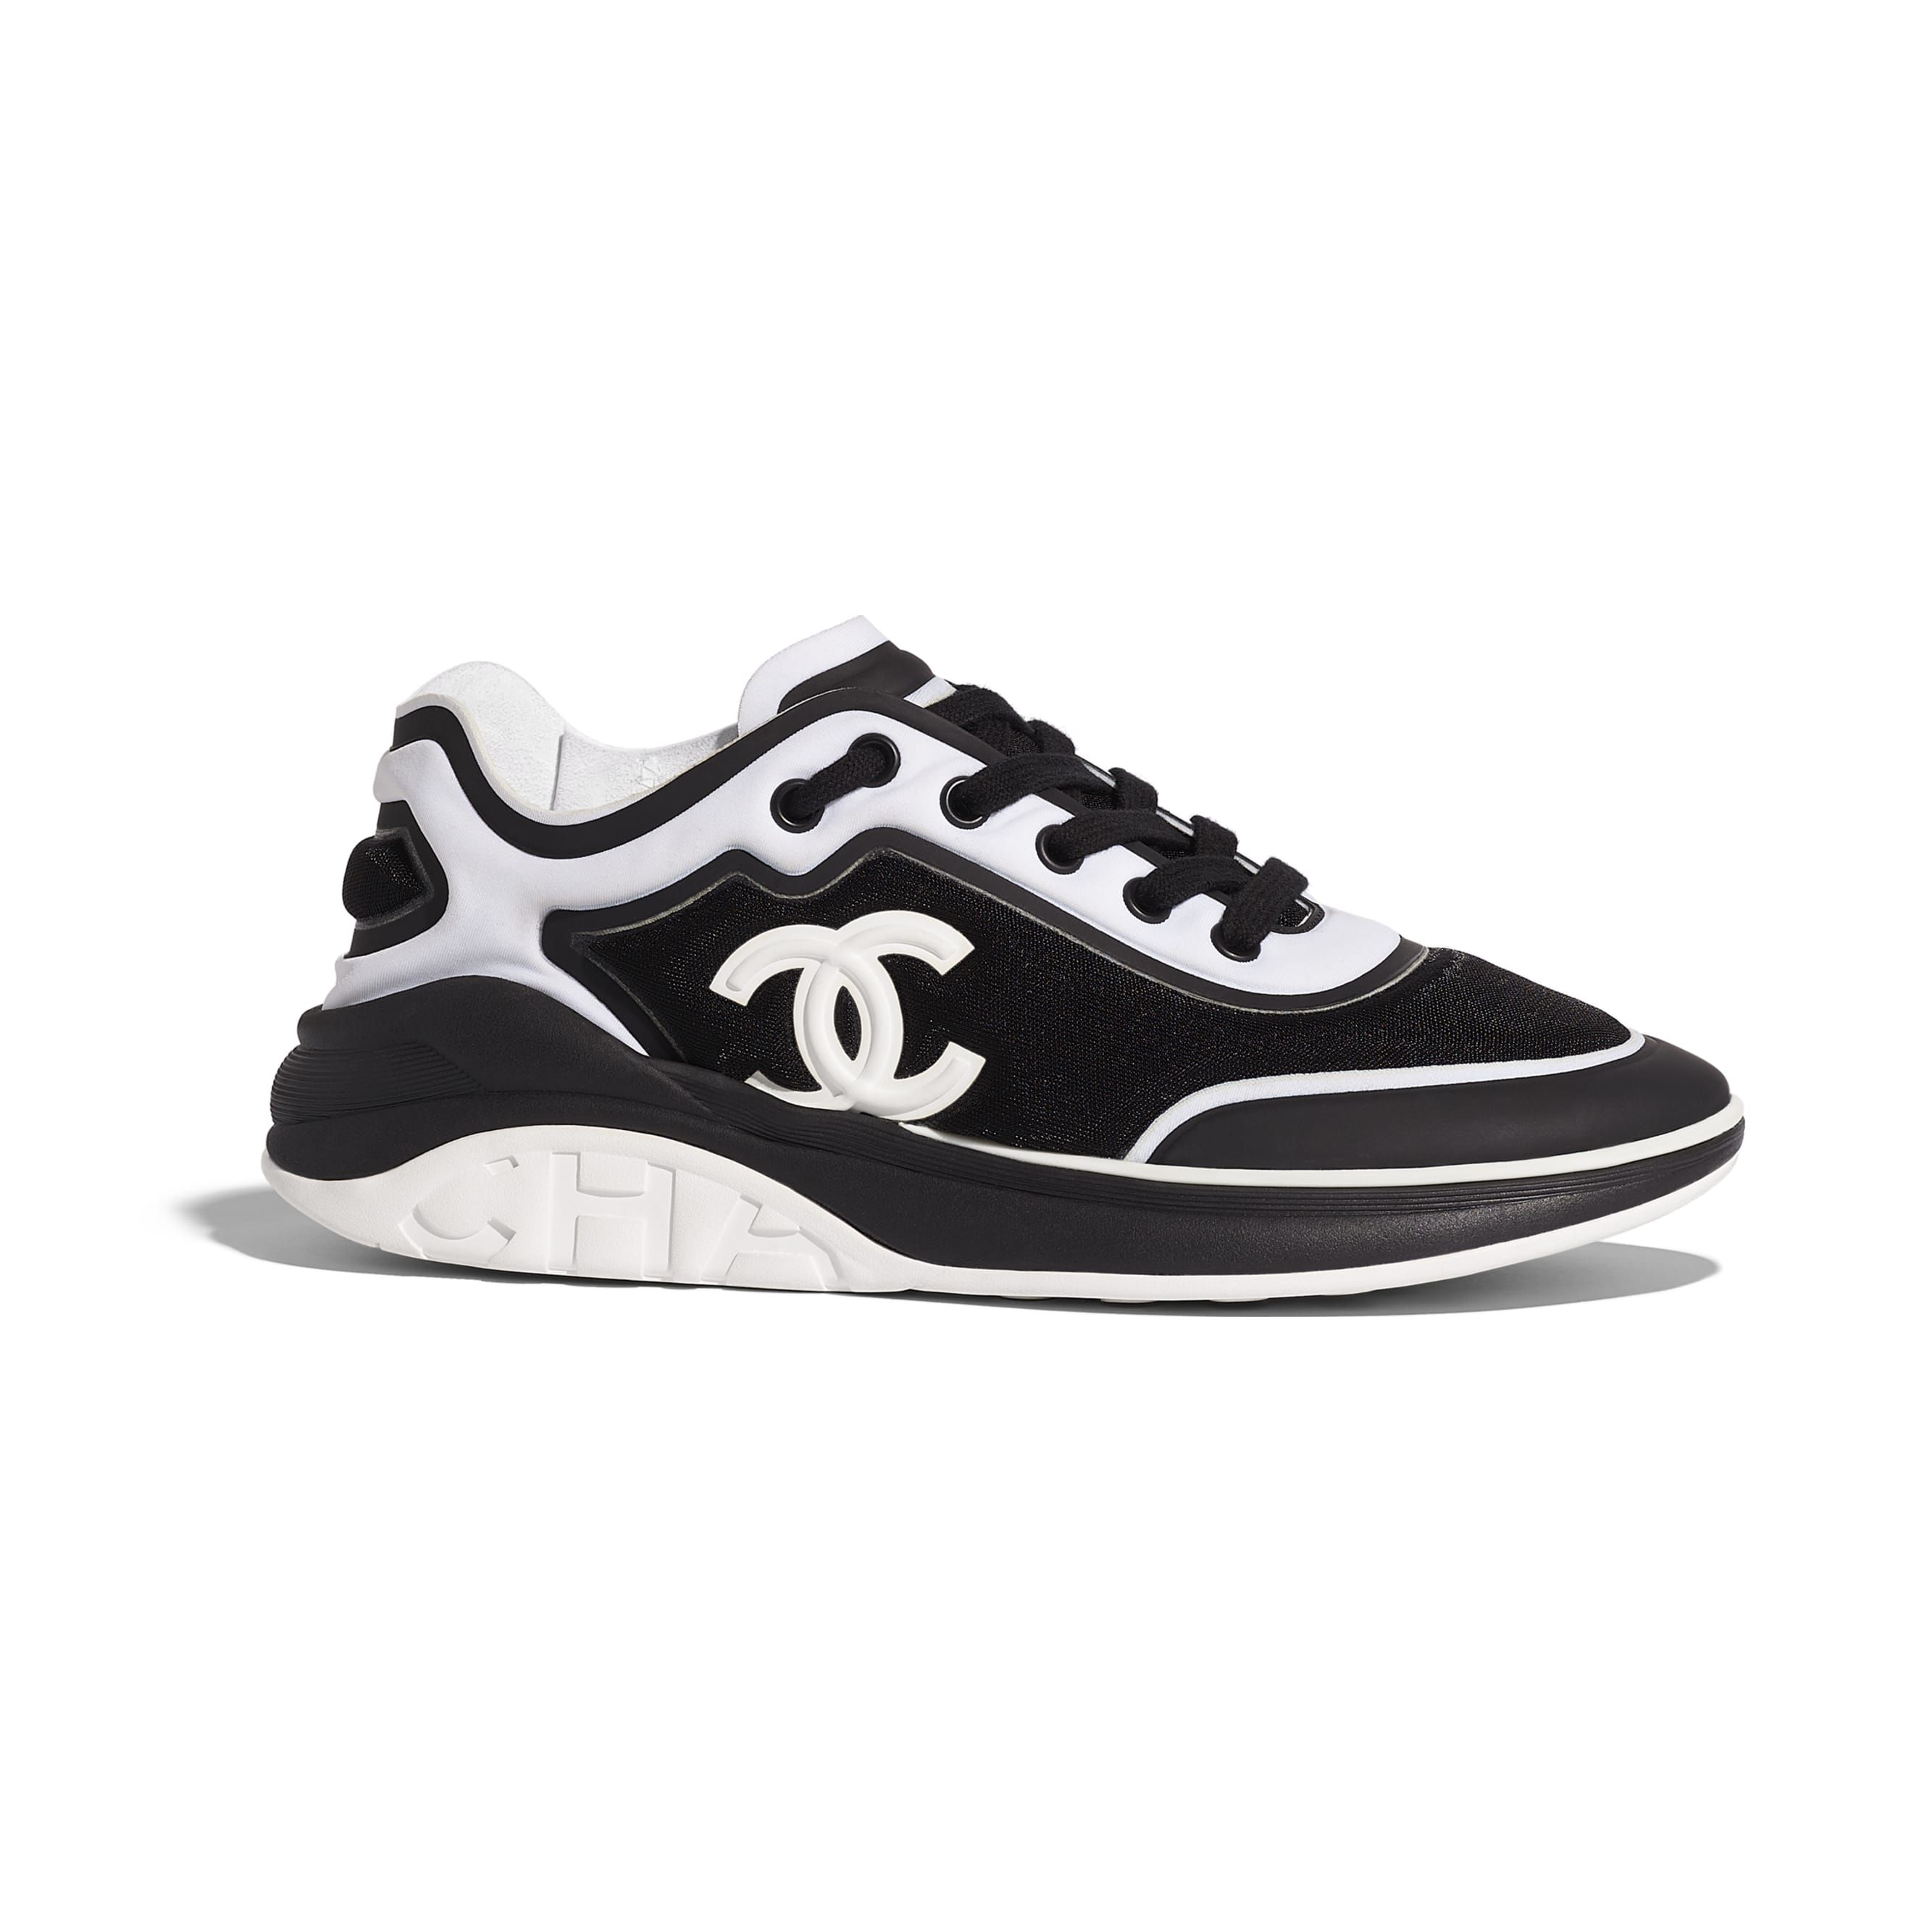 Chanel shoes, Sneakers, Black and white